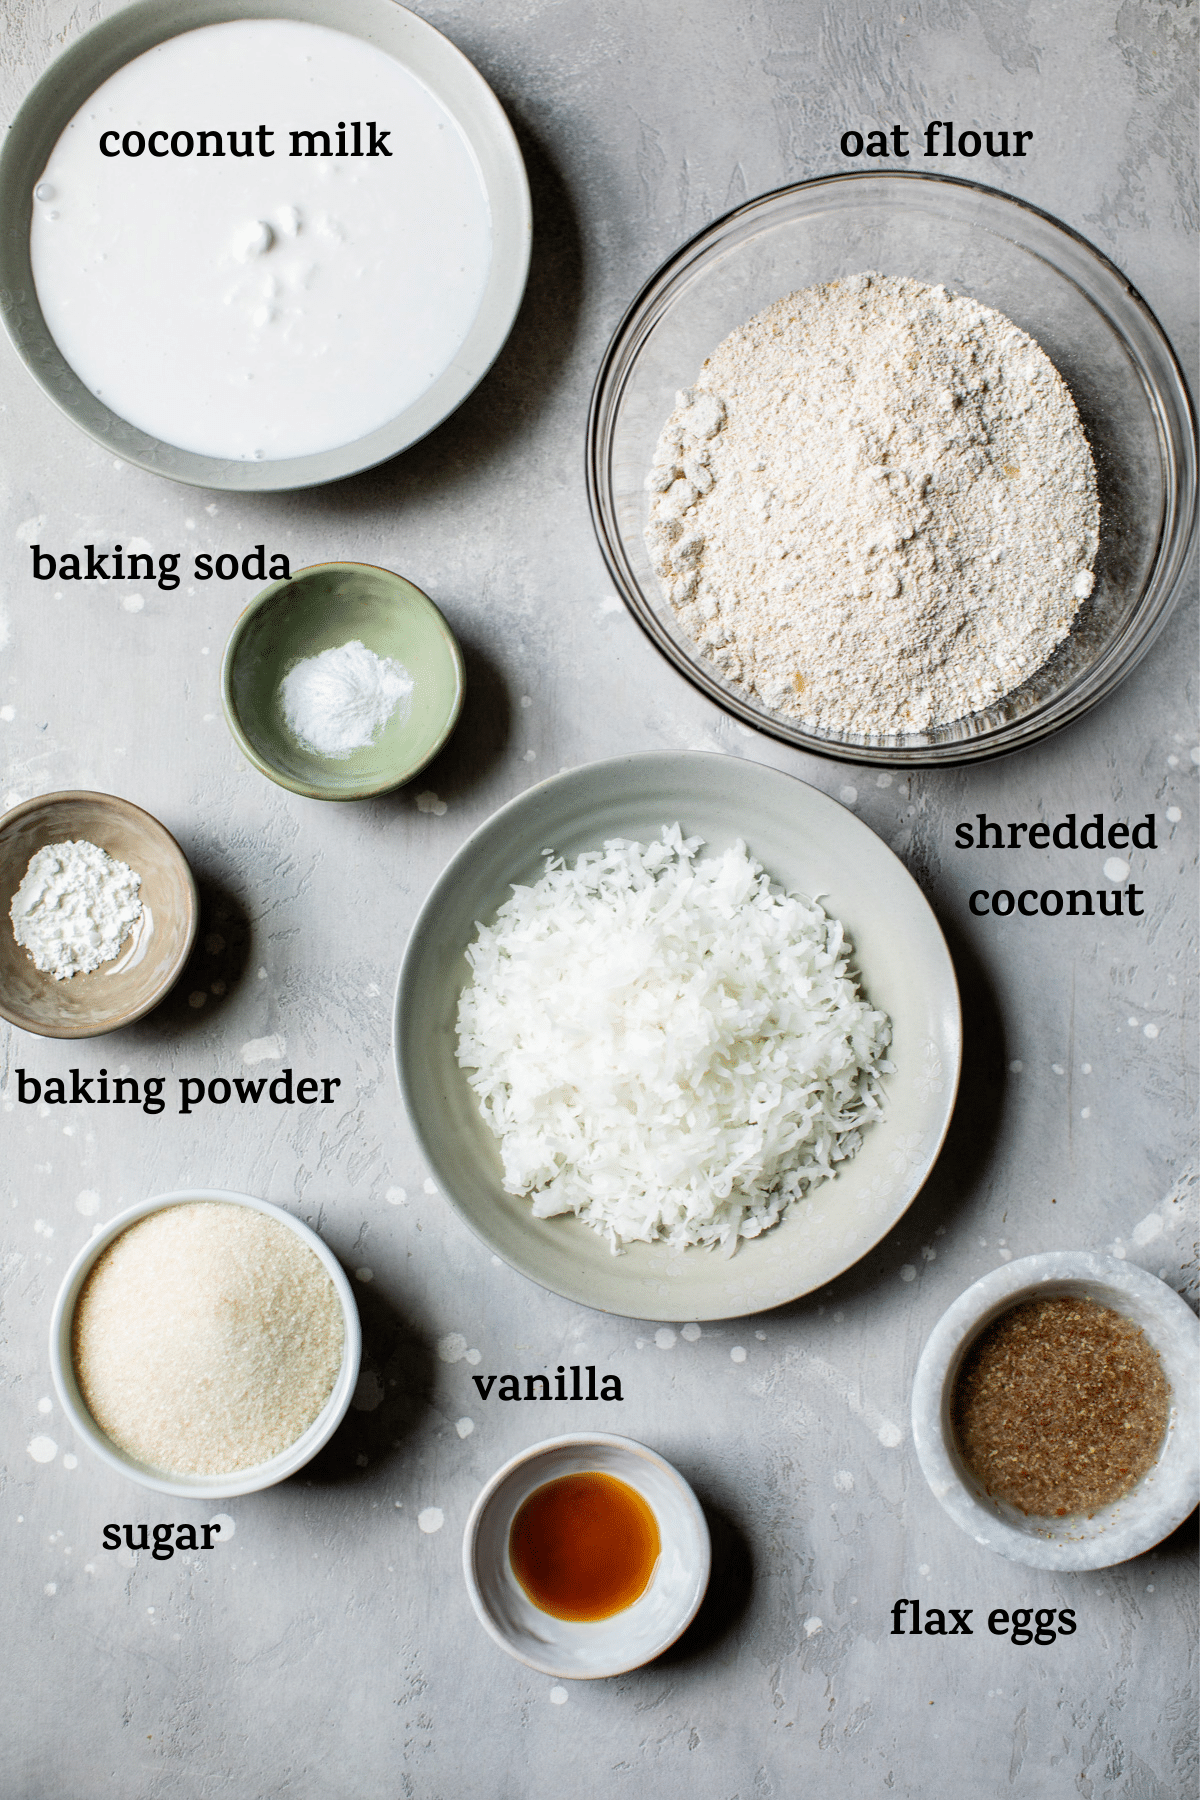 bread ingredients with text overlay